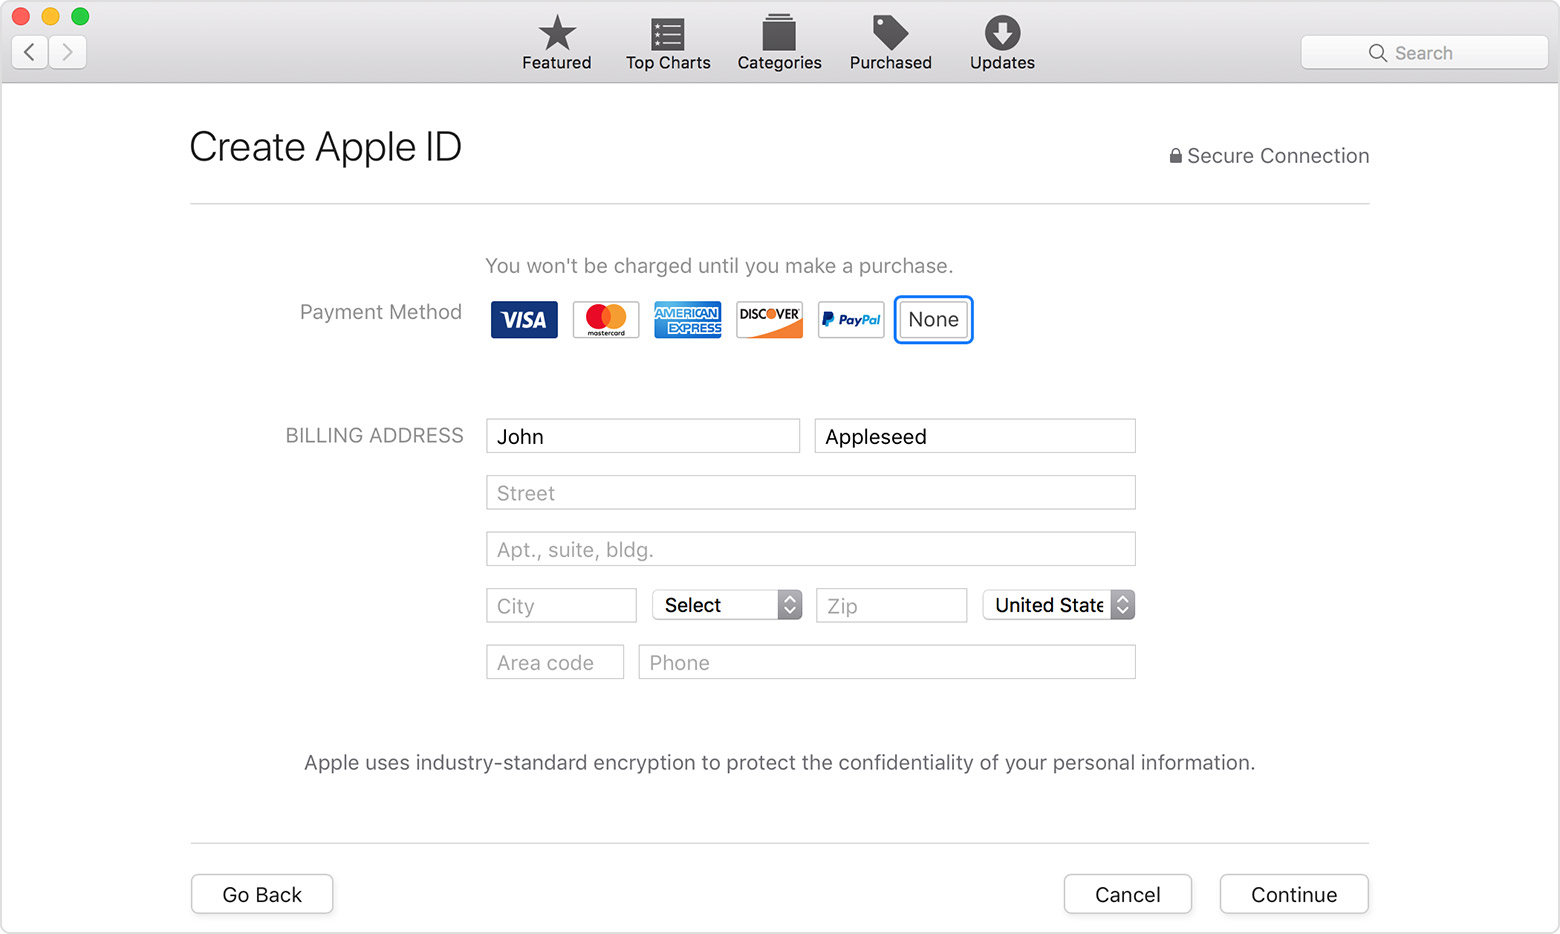 Create Apple ID screen in App Store on Mac